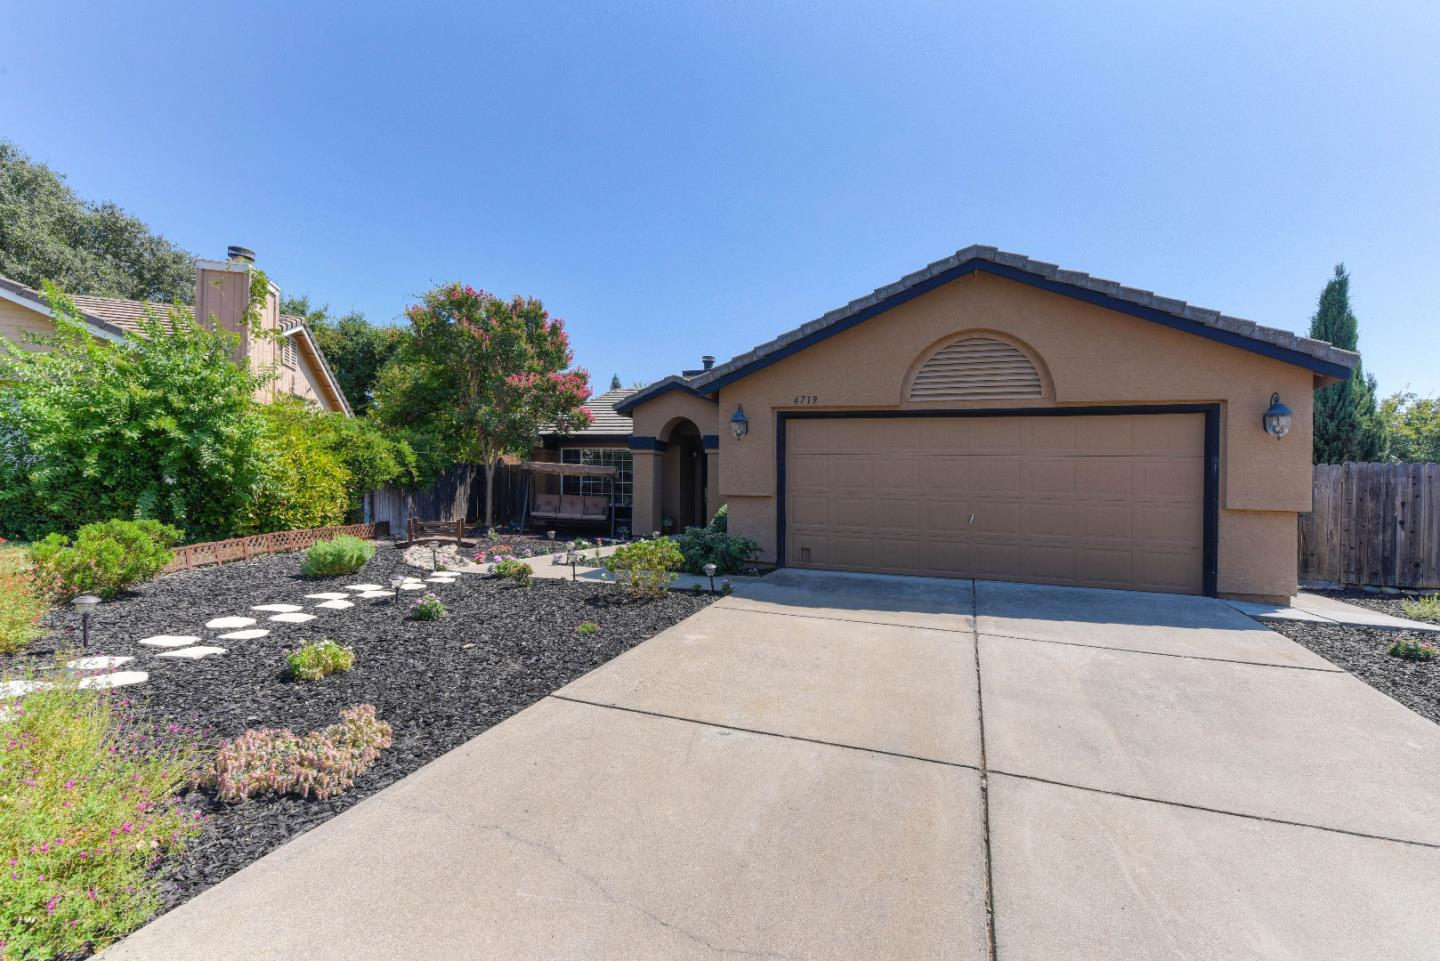 Single Family Home for Sale at 4719 Durham Court Rocklin, California 95765 United States